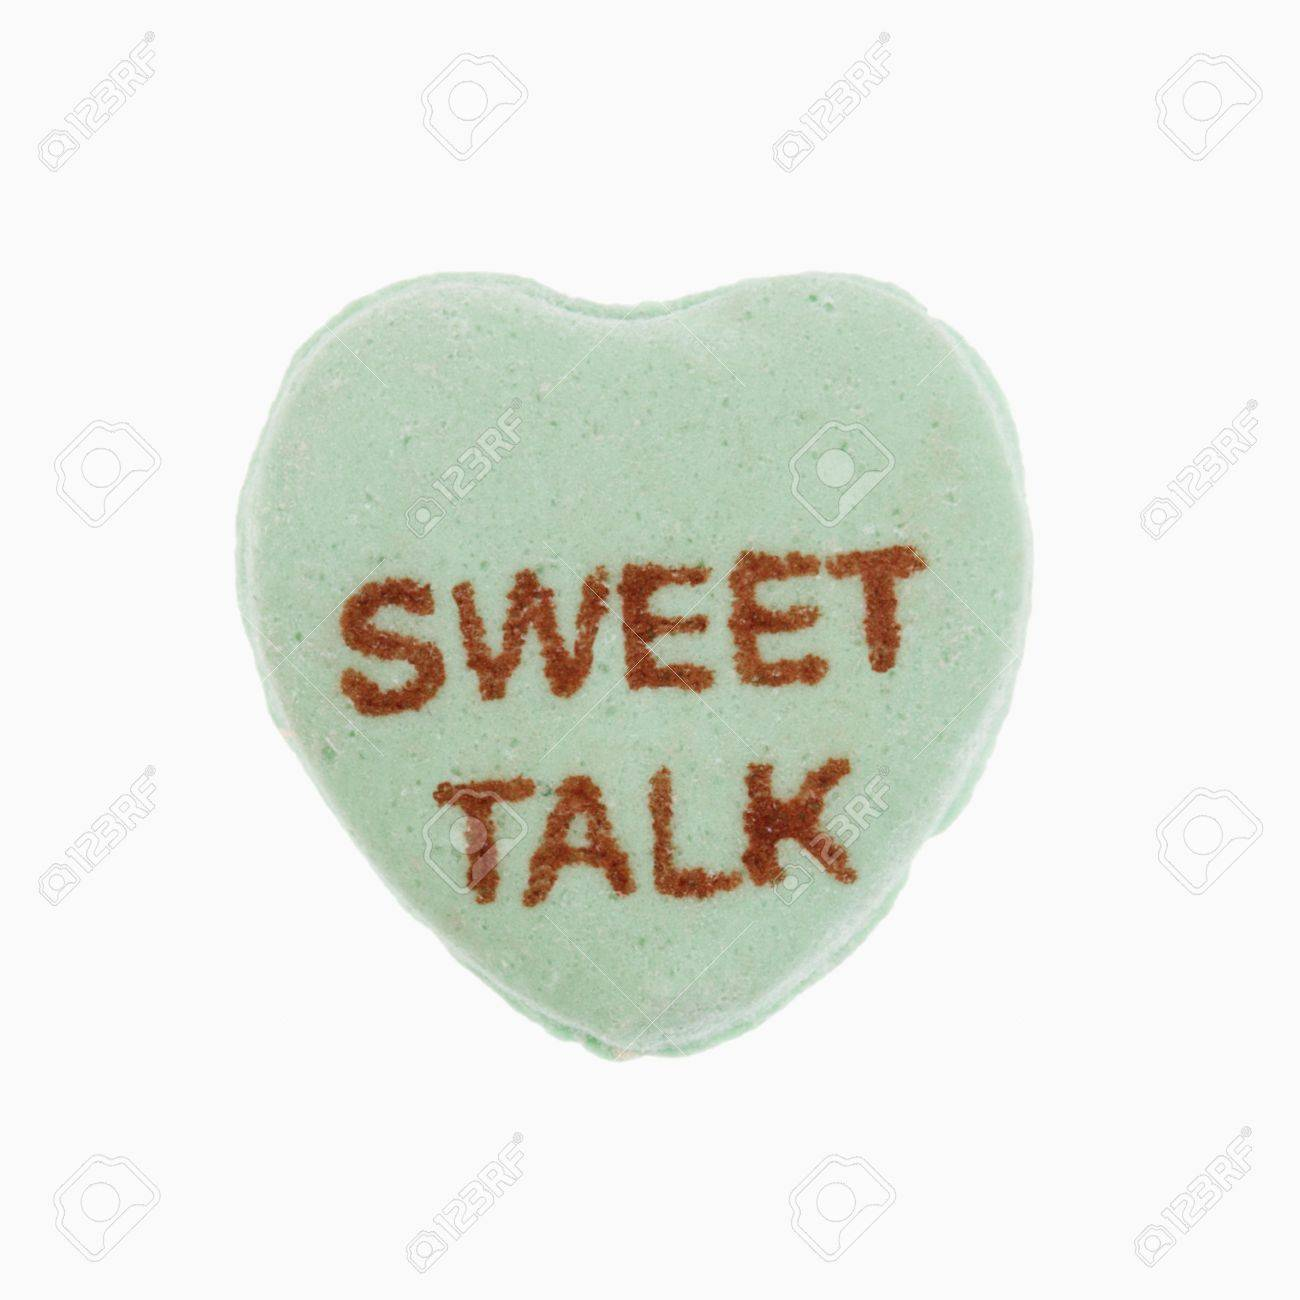 Image result for sweet talk